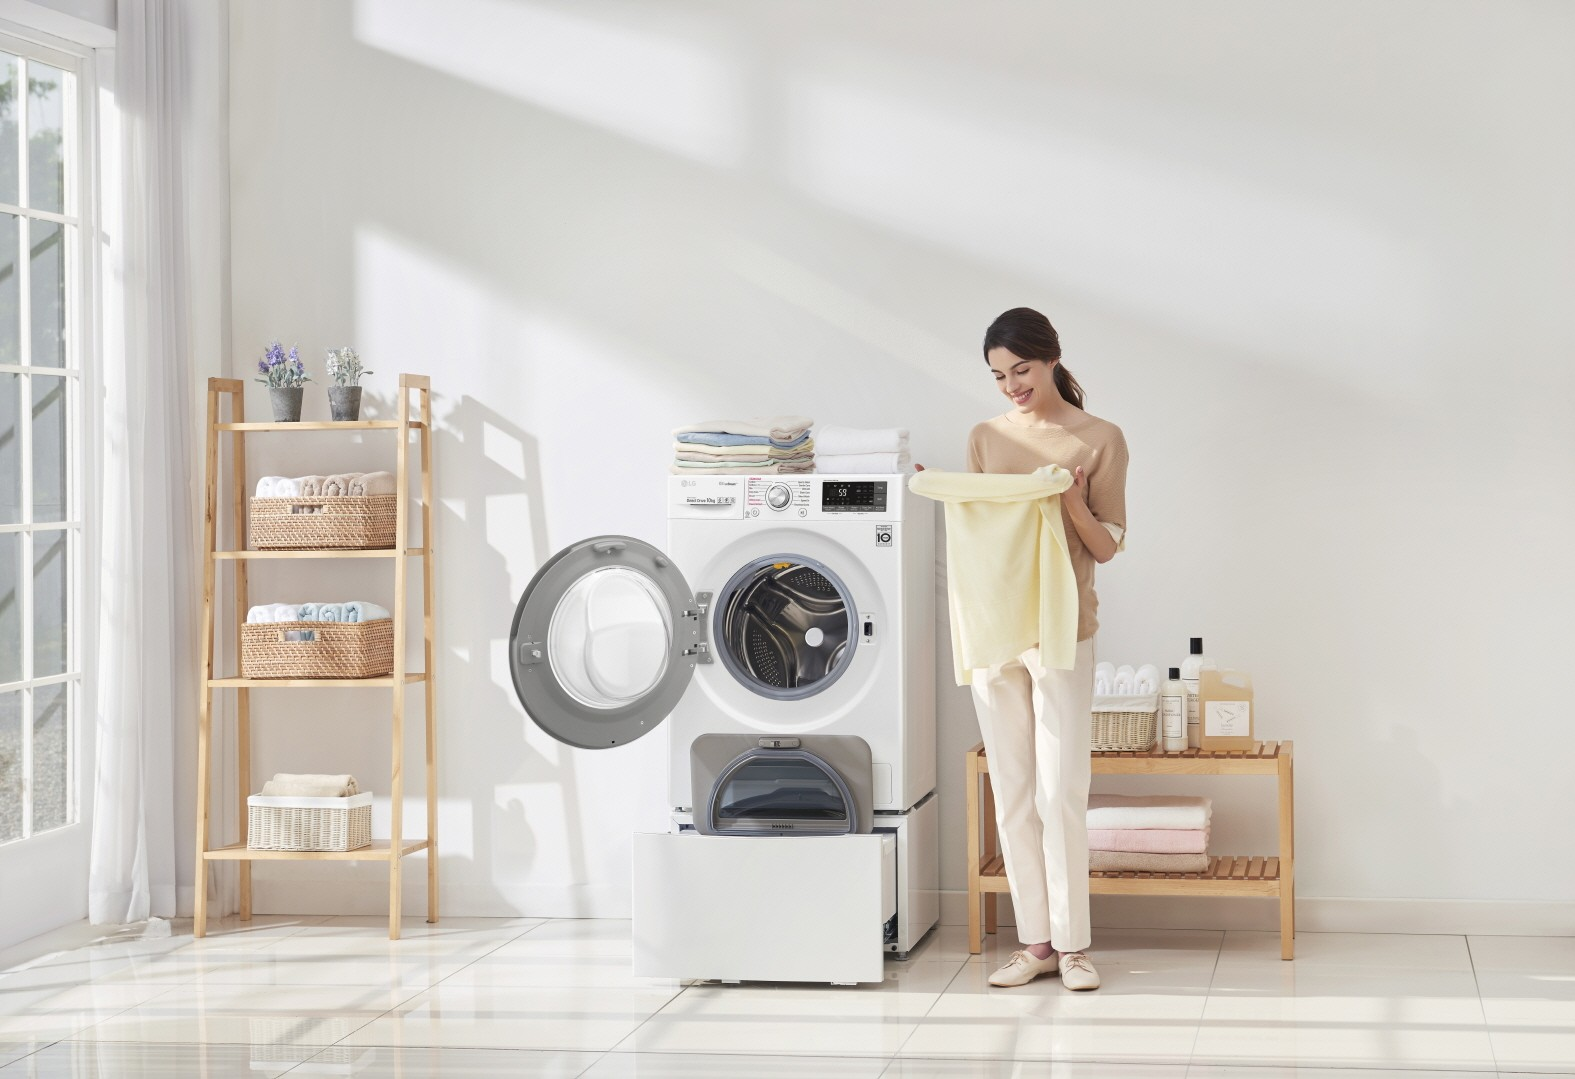 A woman holding yellow towel and standing next to LG TWINWash™ washing machine with both doors open and folded towels stacked on top of the washer in a laundry room